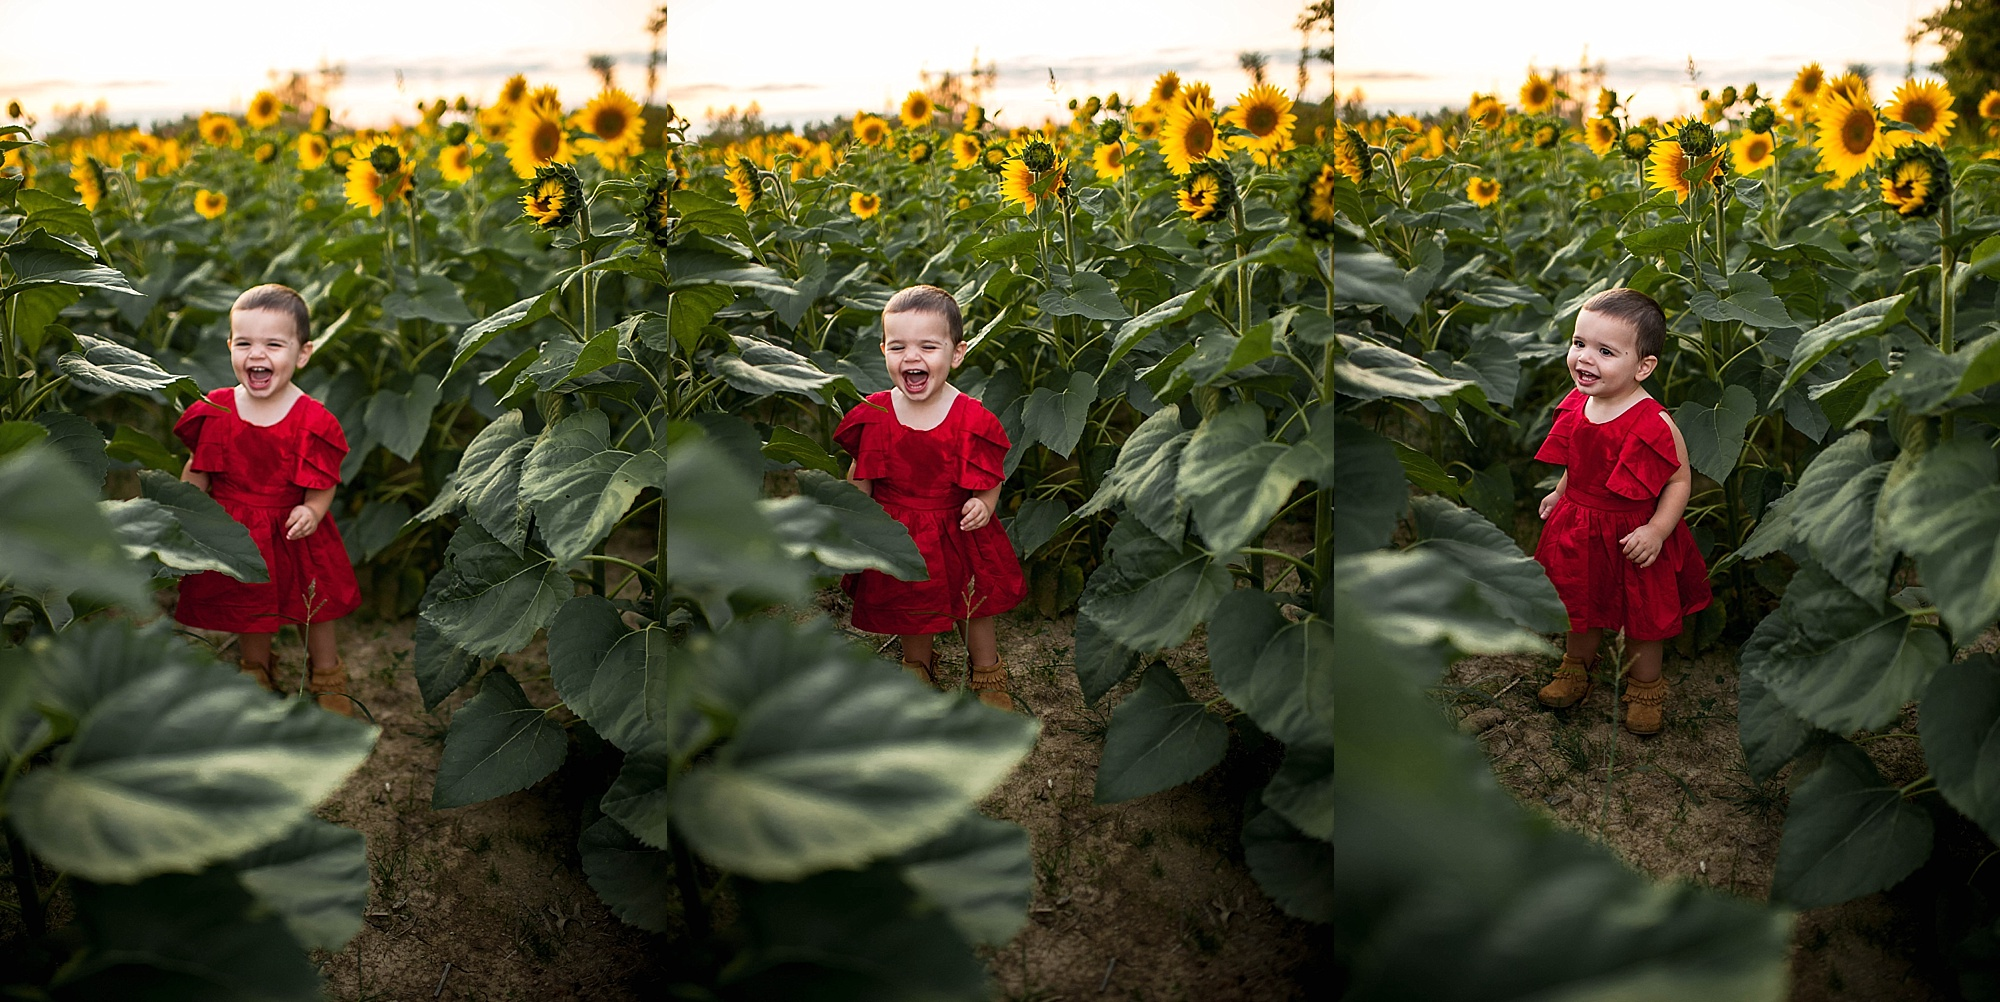 lauren-grayson-photography-cleveland-ohio-photographer-sunflower-fields-sunset-golden-hour-photo-shoot-mommy-and-me-family-child-photographer_0580.jpg